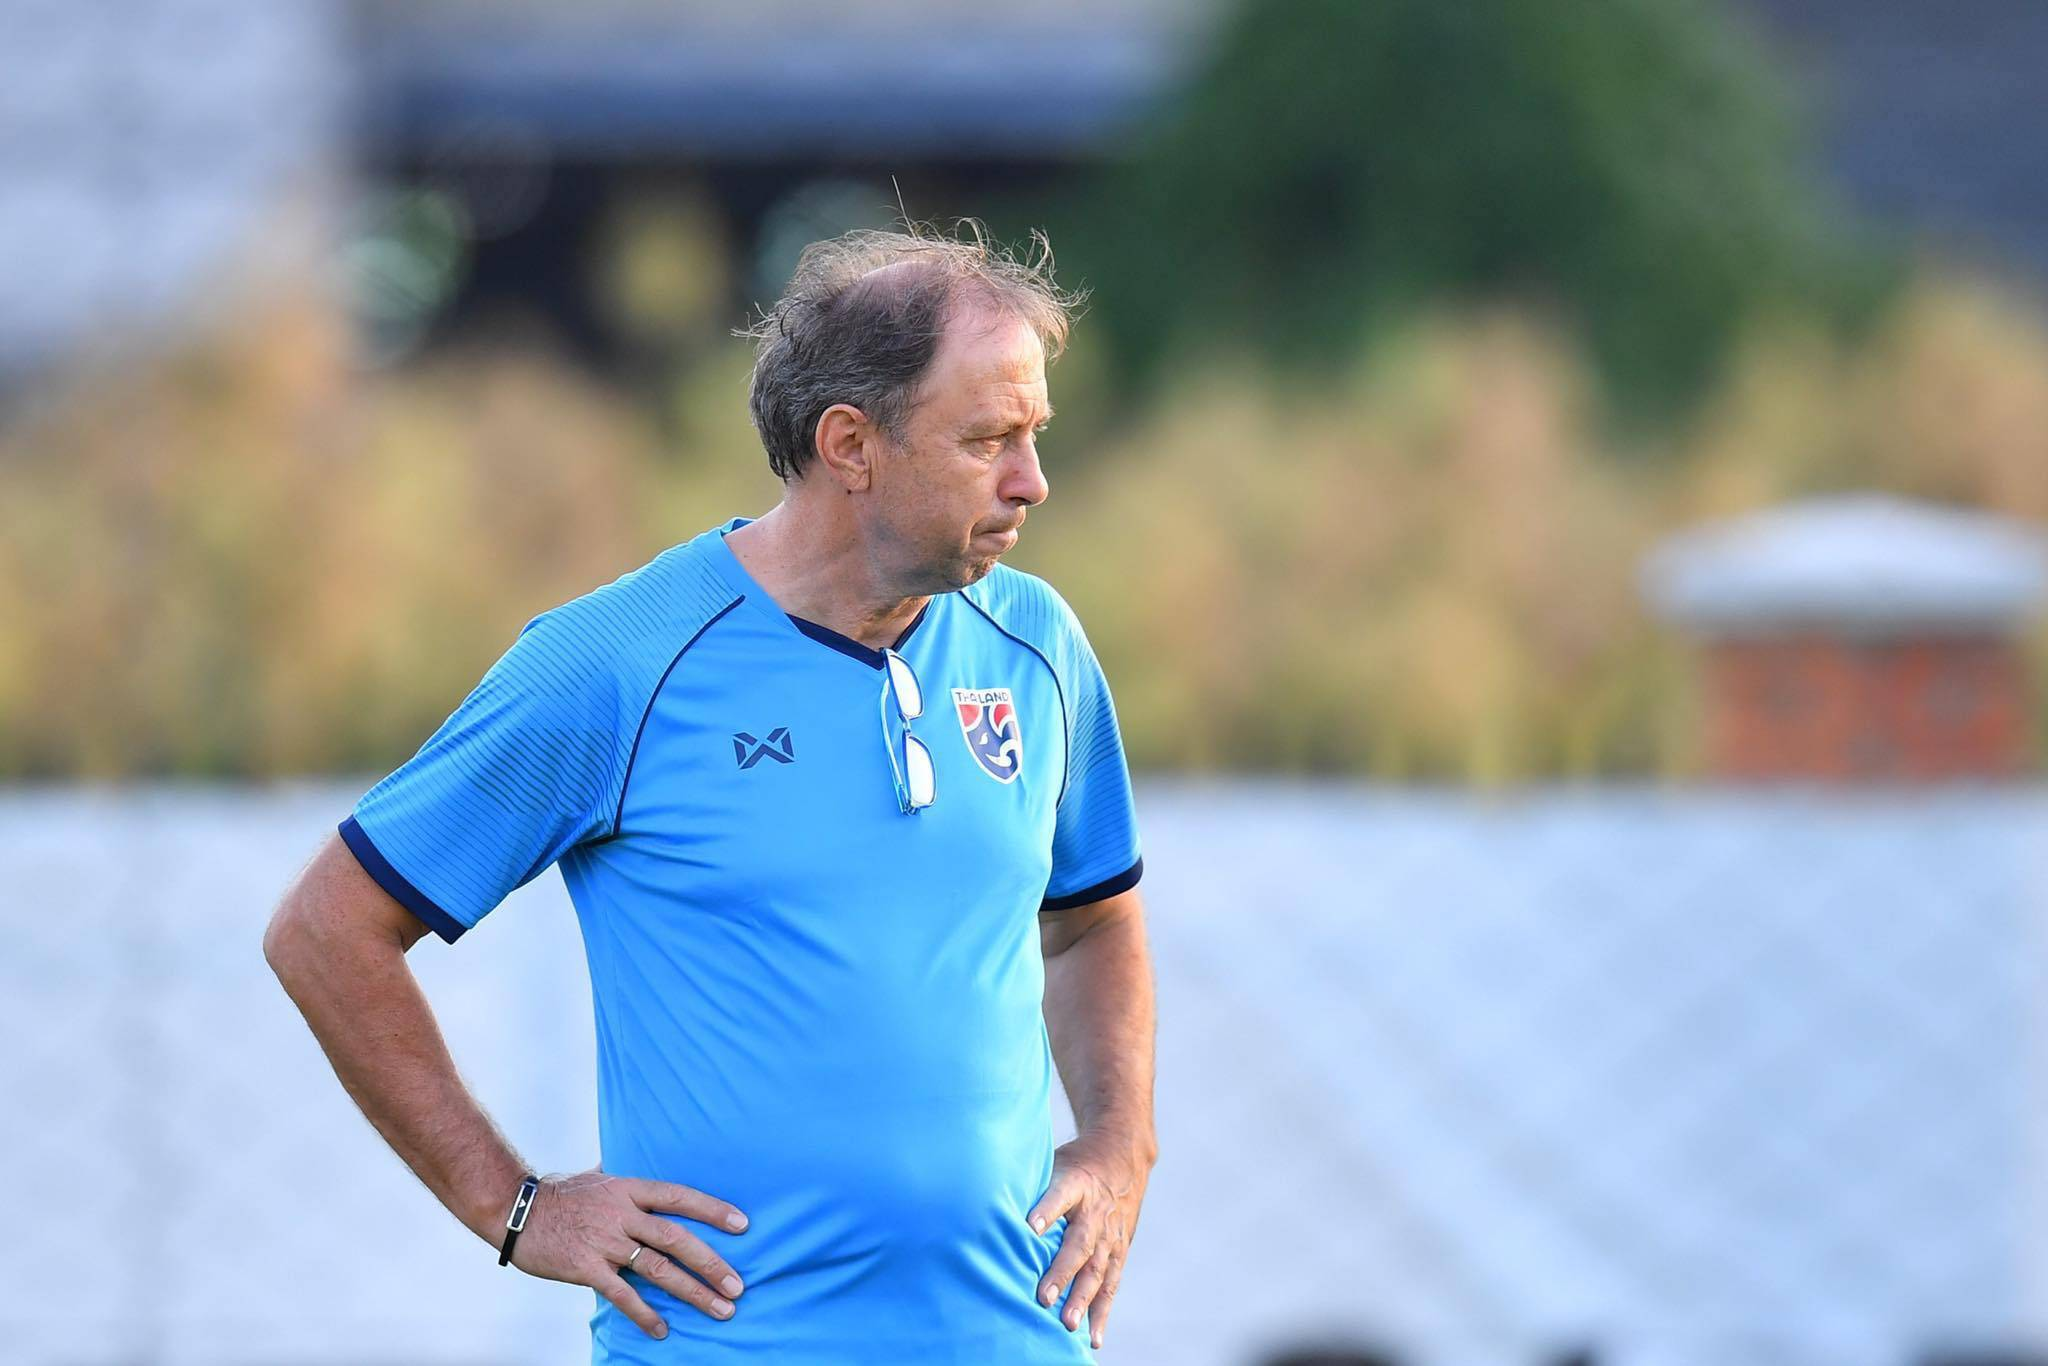 AFF Cup 2018 – Coach and Player Comments